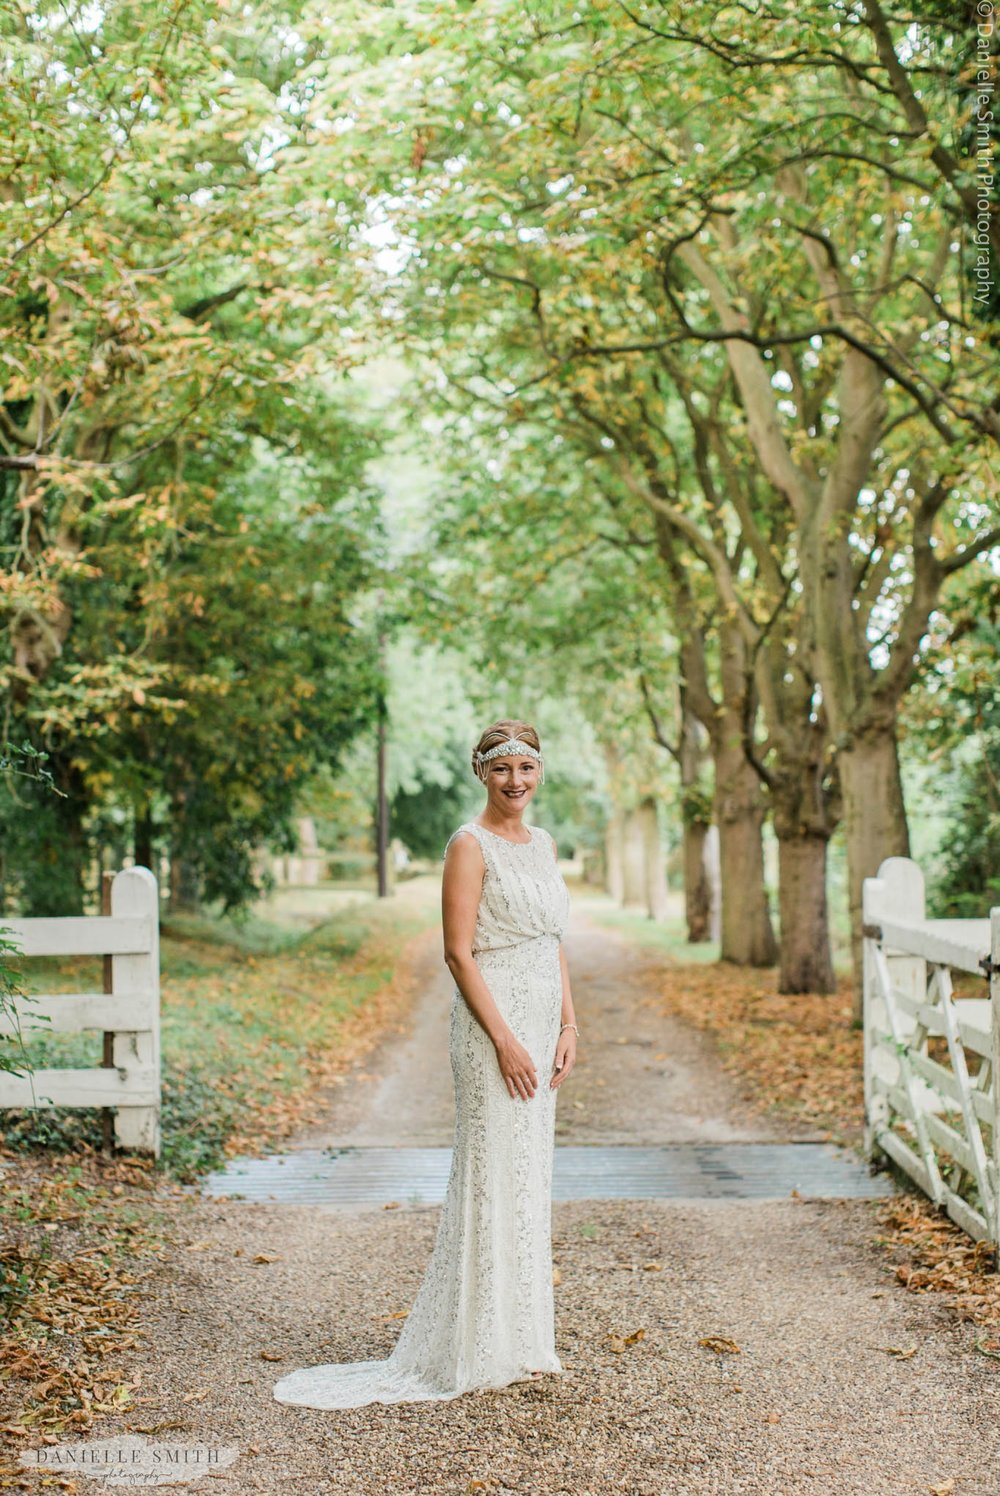 art deco style bride with headpiece